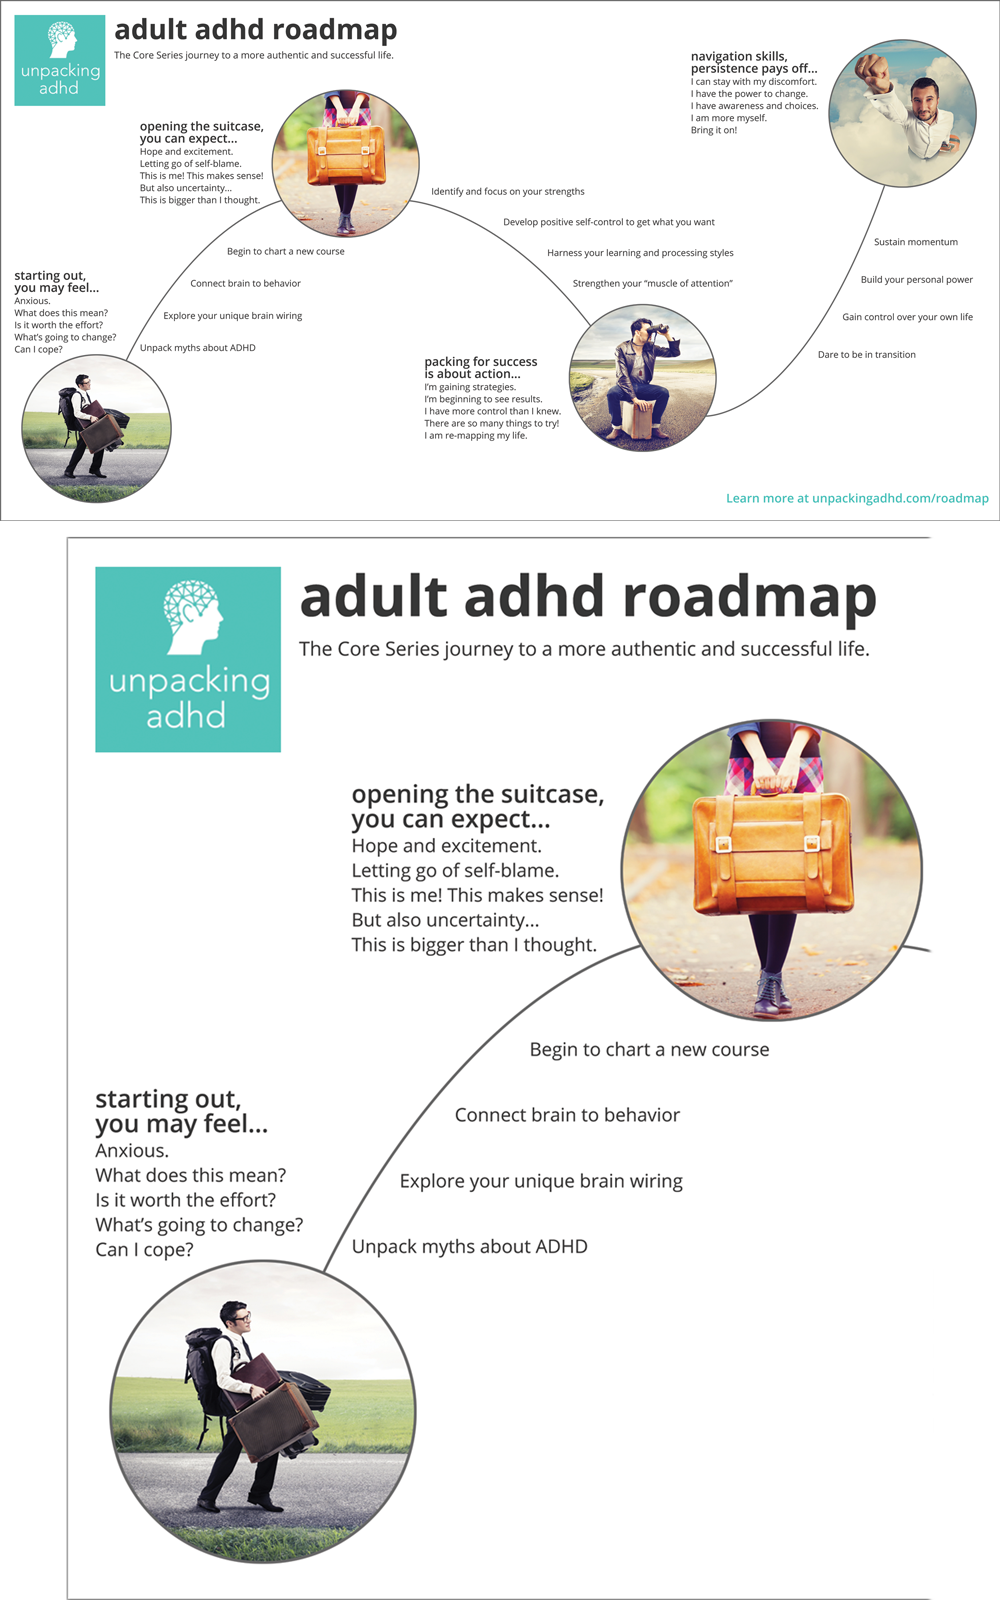 adult_adhd_roadmap_portfolio